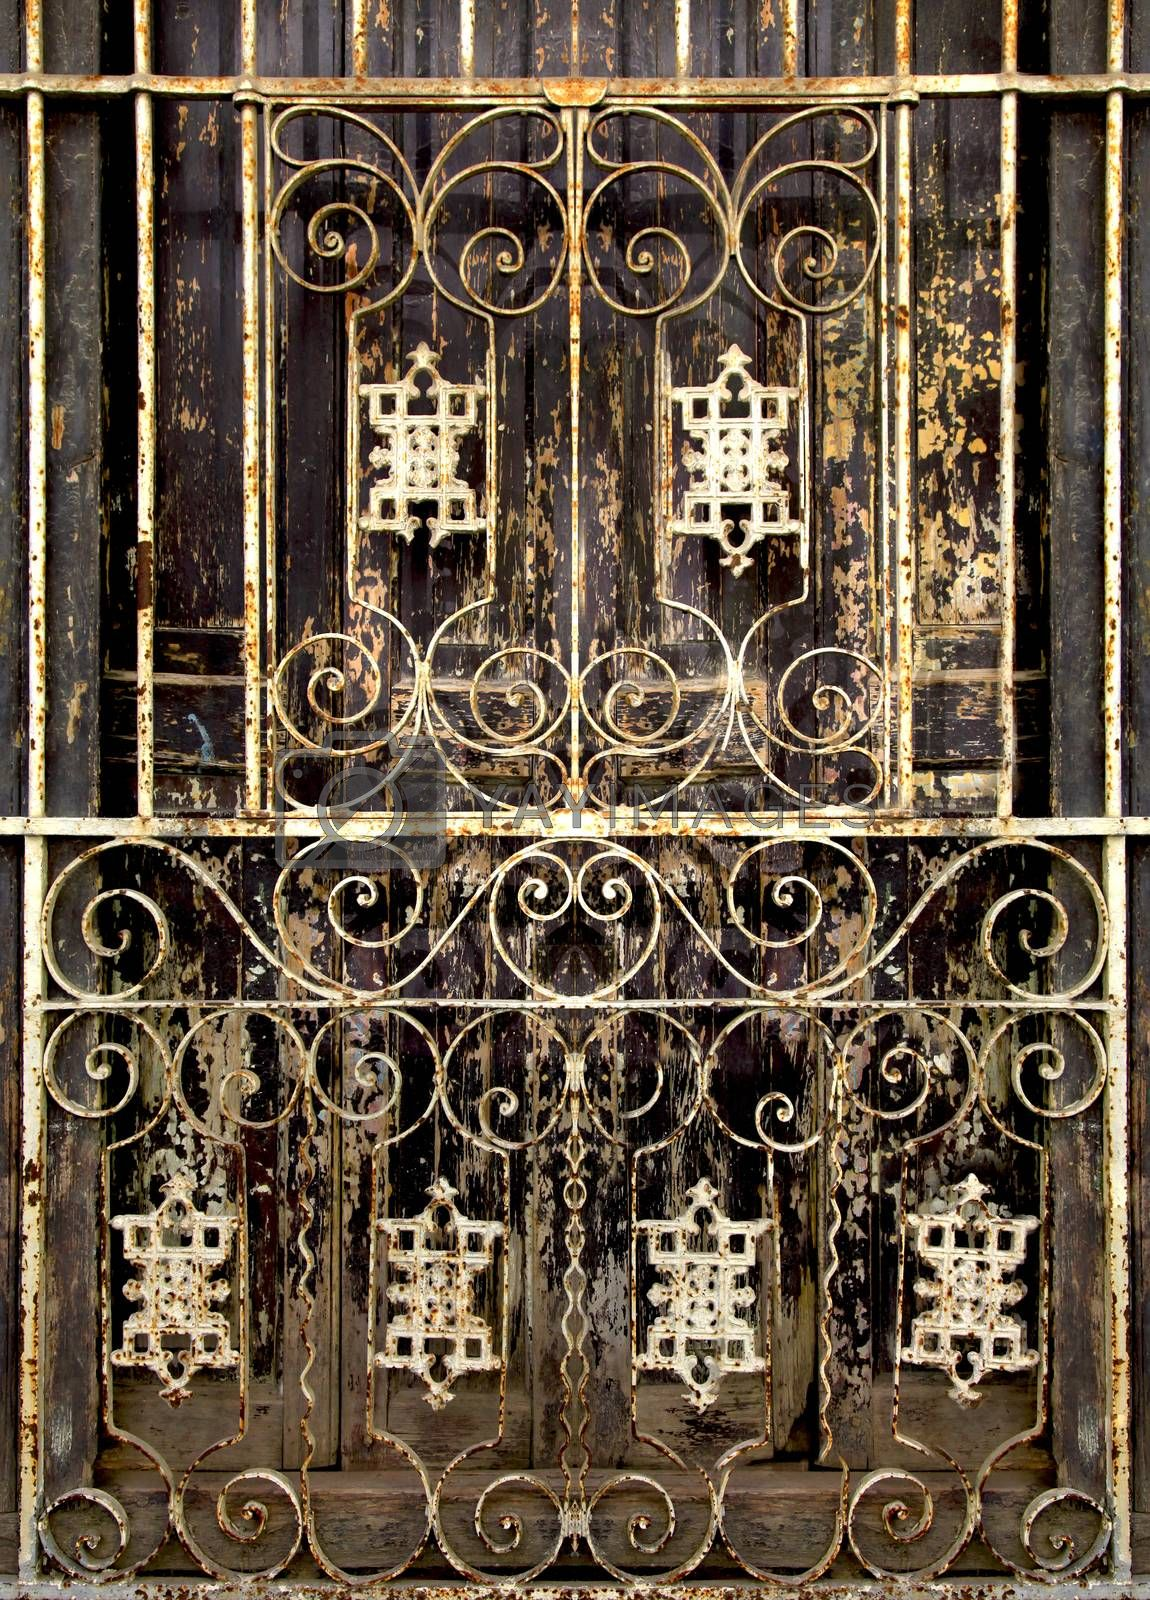 Beautiful forged grille on the wooden  door in Old Havana, Cuba